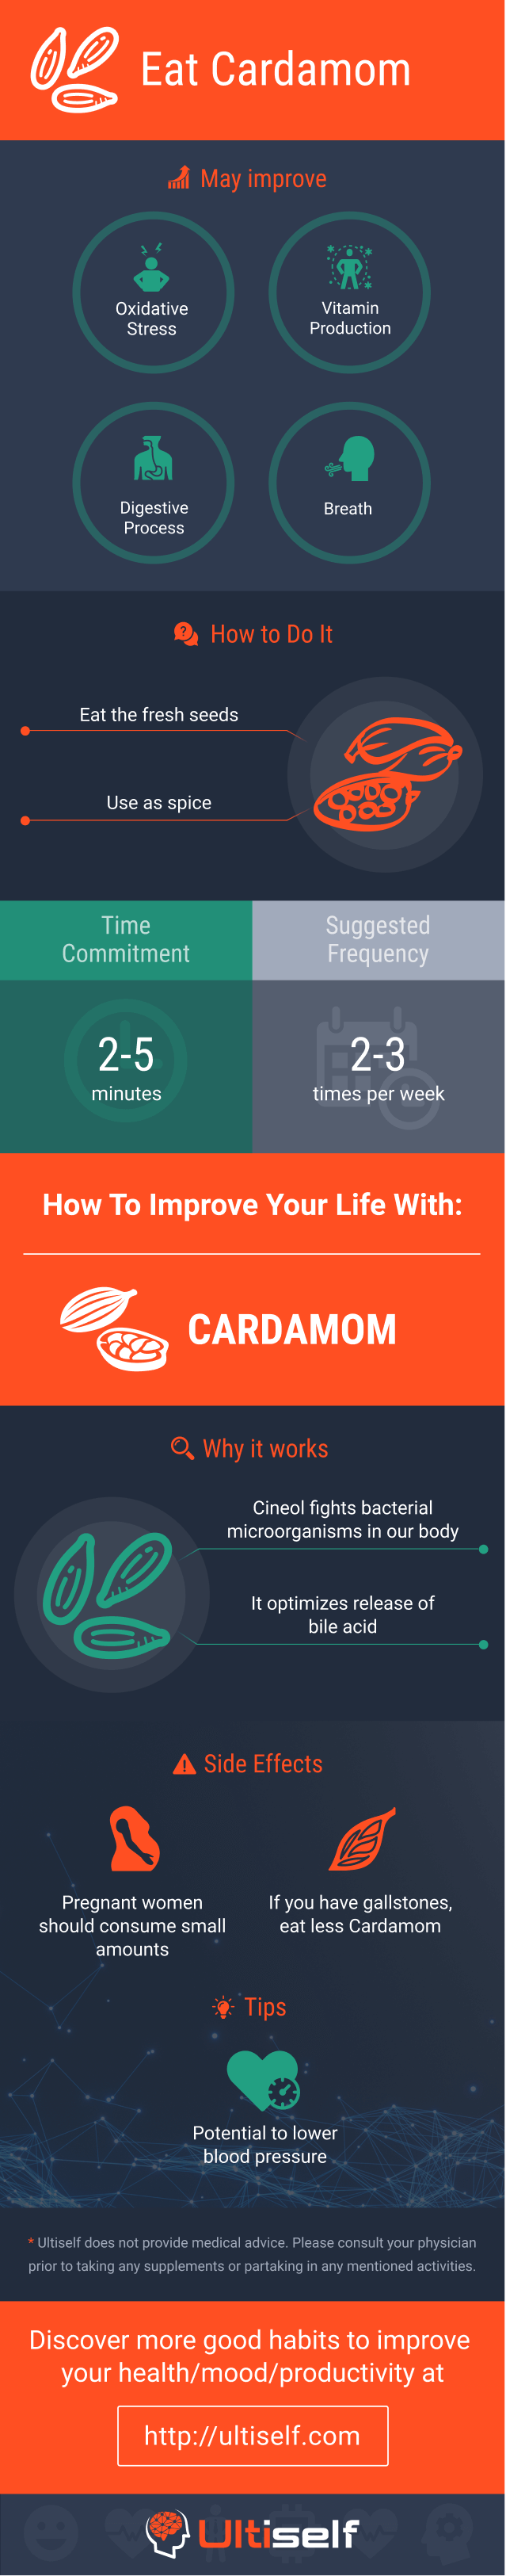 Eat Cardamom infographic